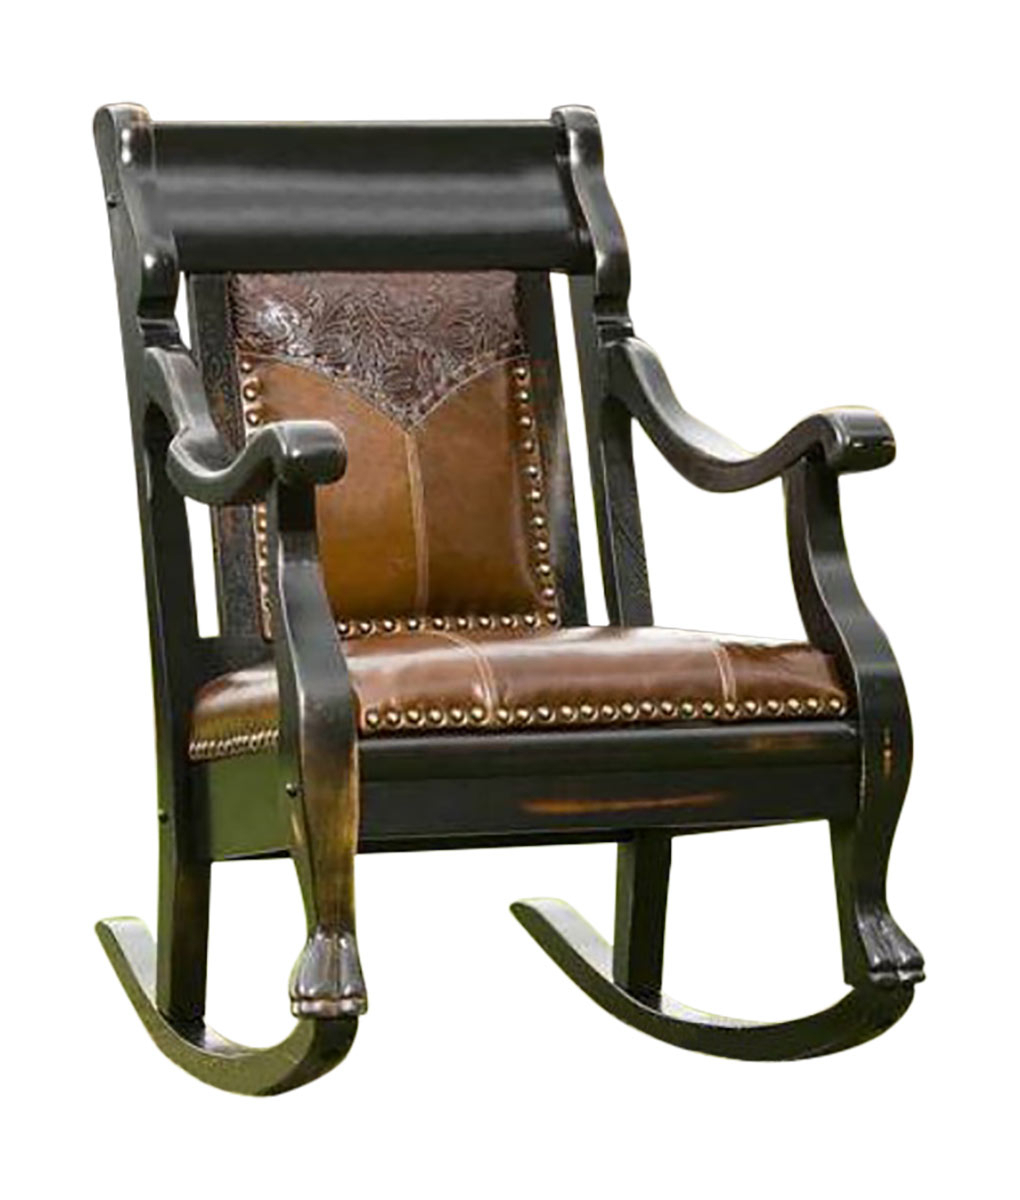 Vintage Rocker With Embossed Yoke Regarding Elegant Tobacco Brown Wooden Rocking Chairs (#19 of 20)